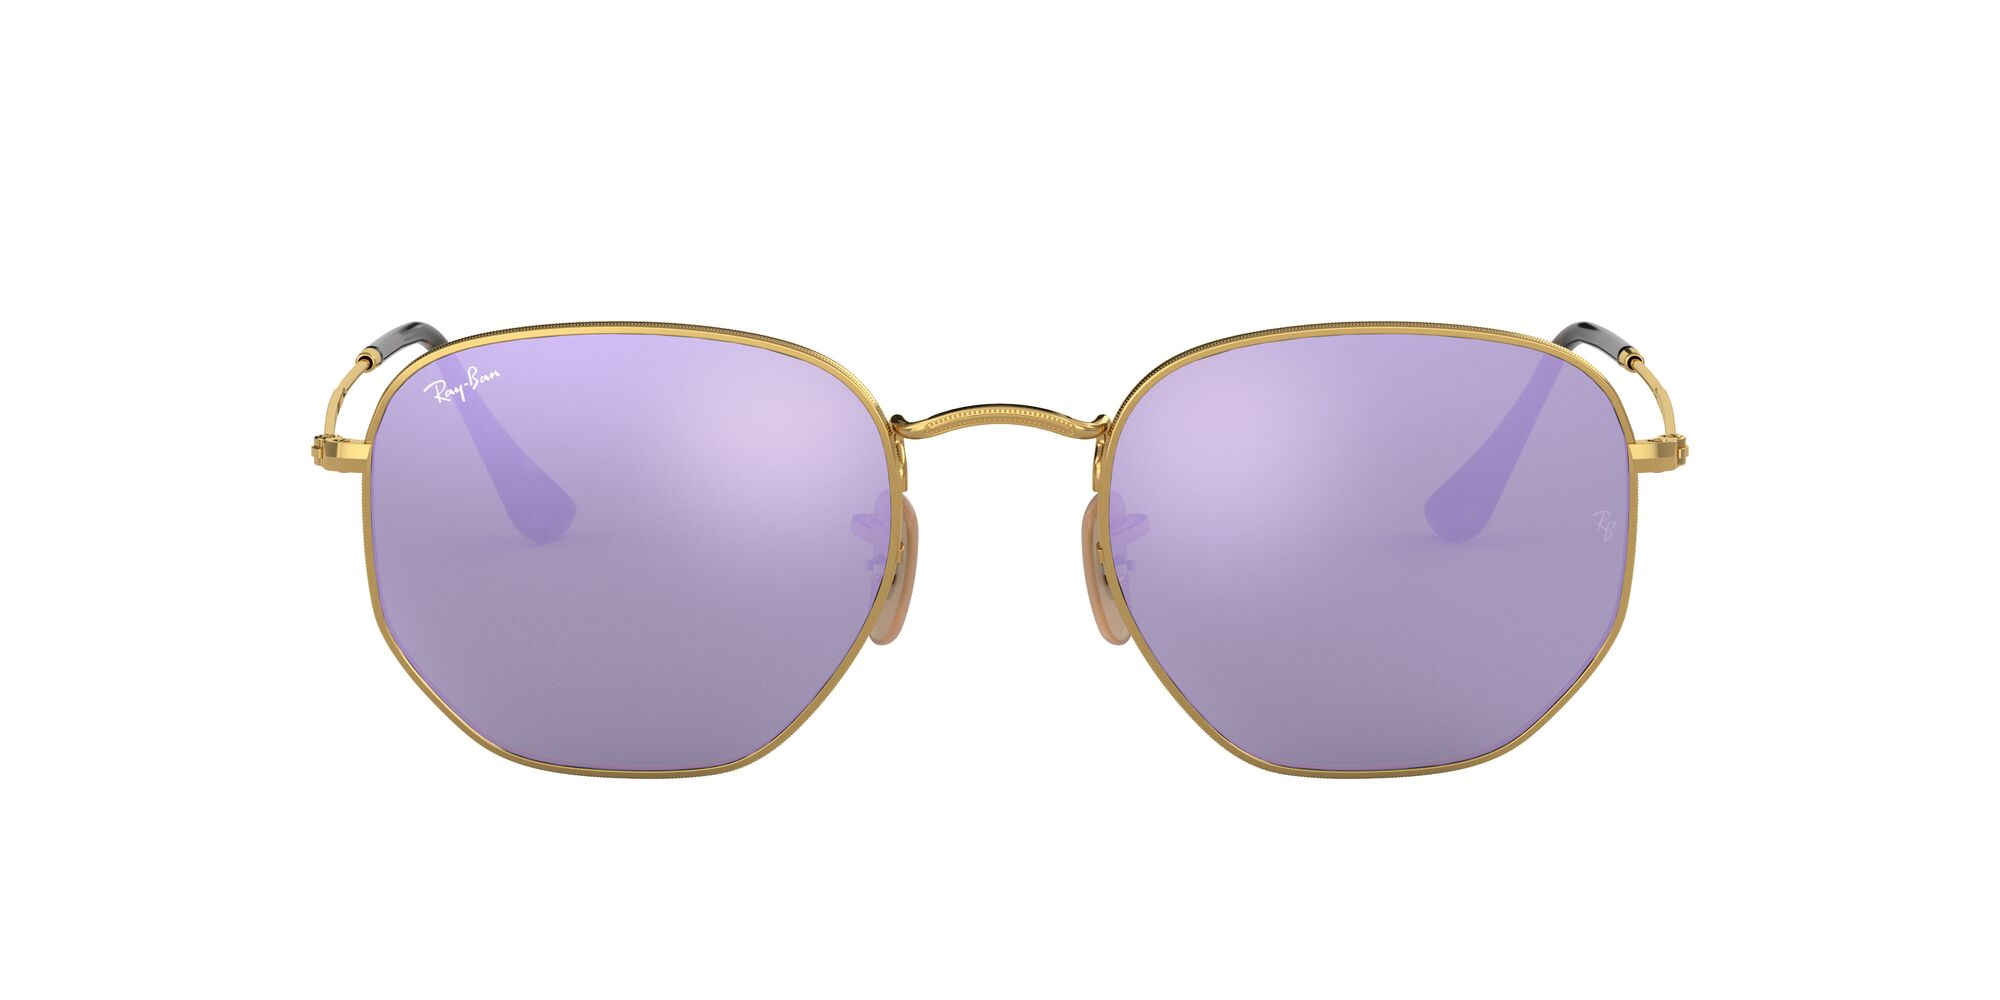 Front Ray-Ban Ray-Ban 0RB3548N 001/8O 48/21 Goud/Paars